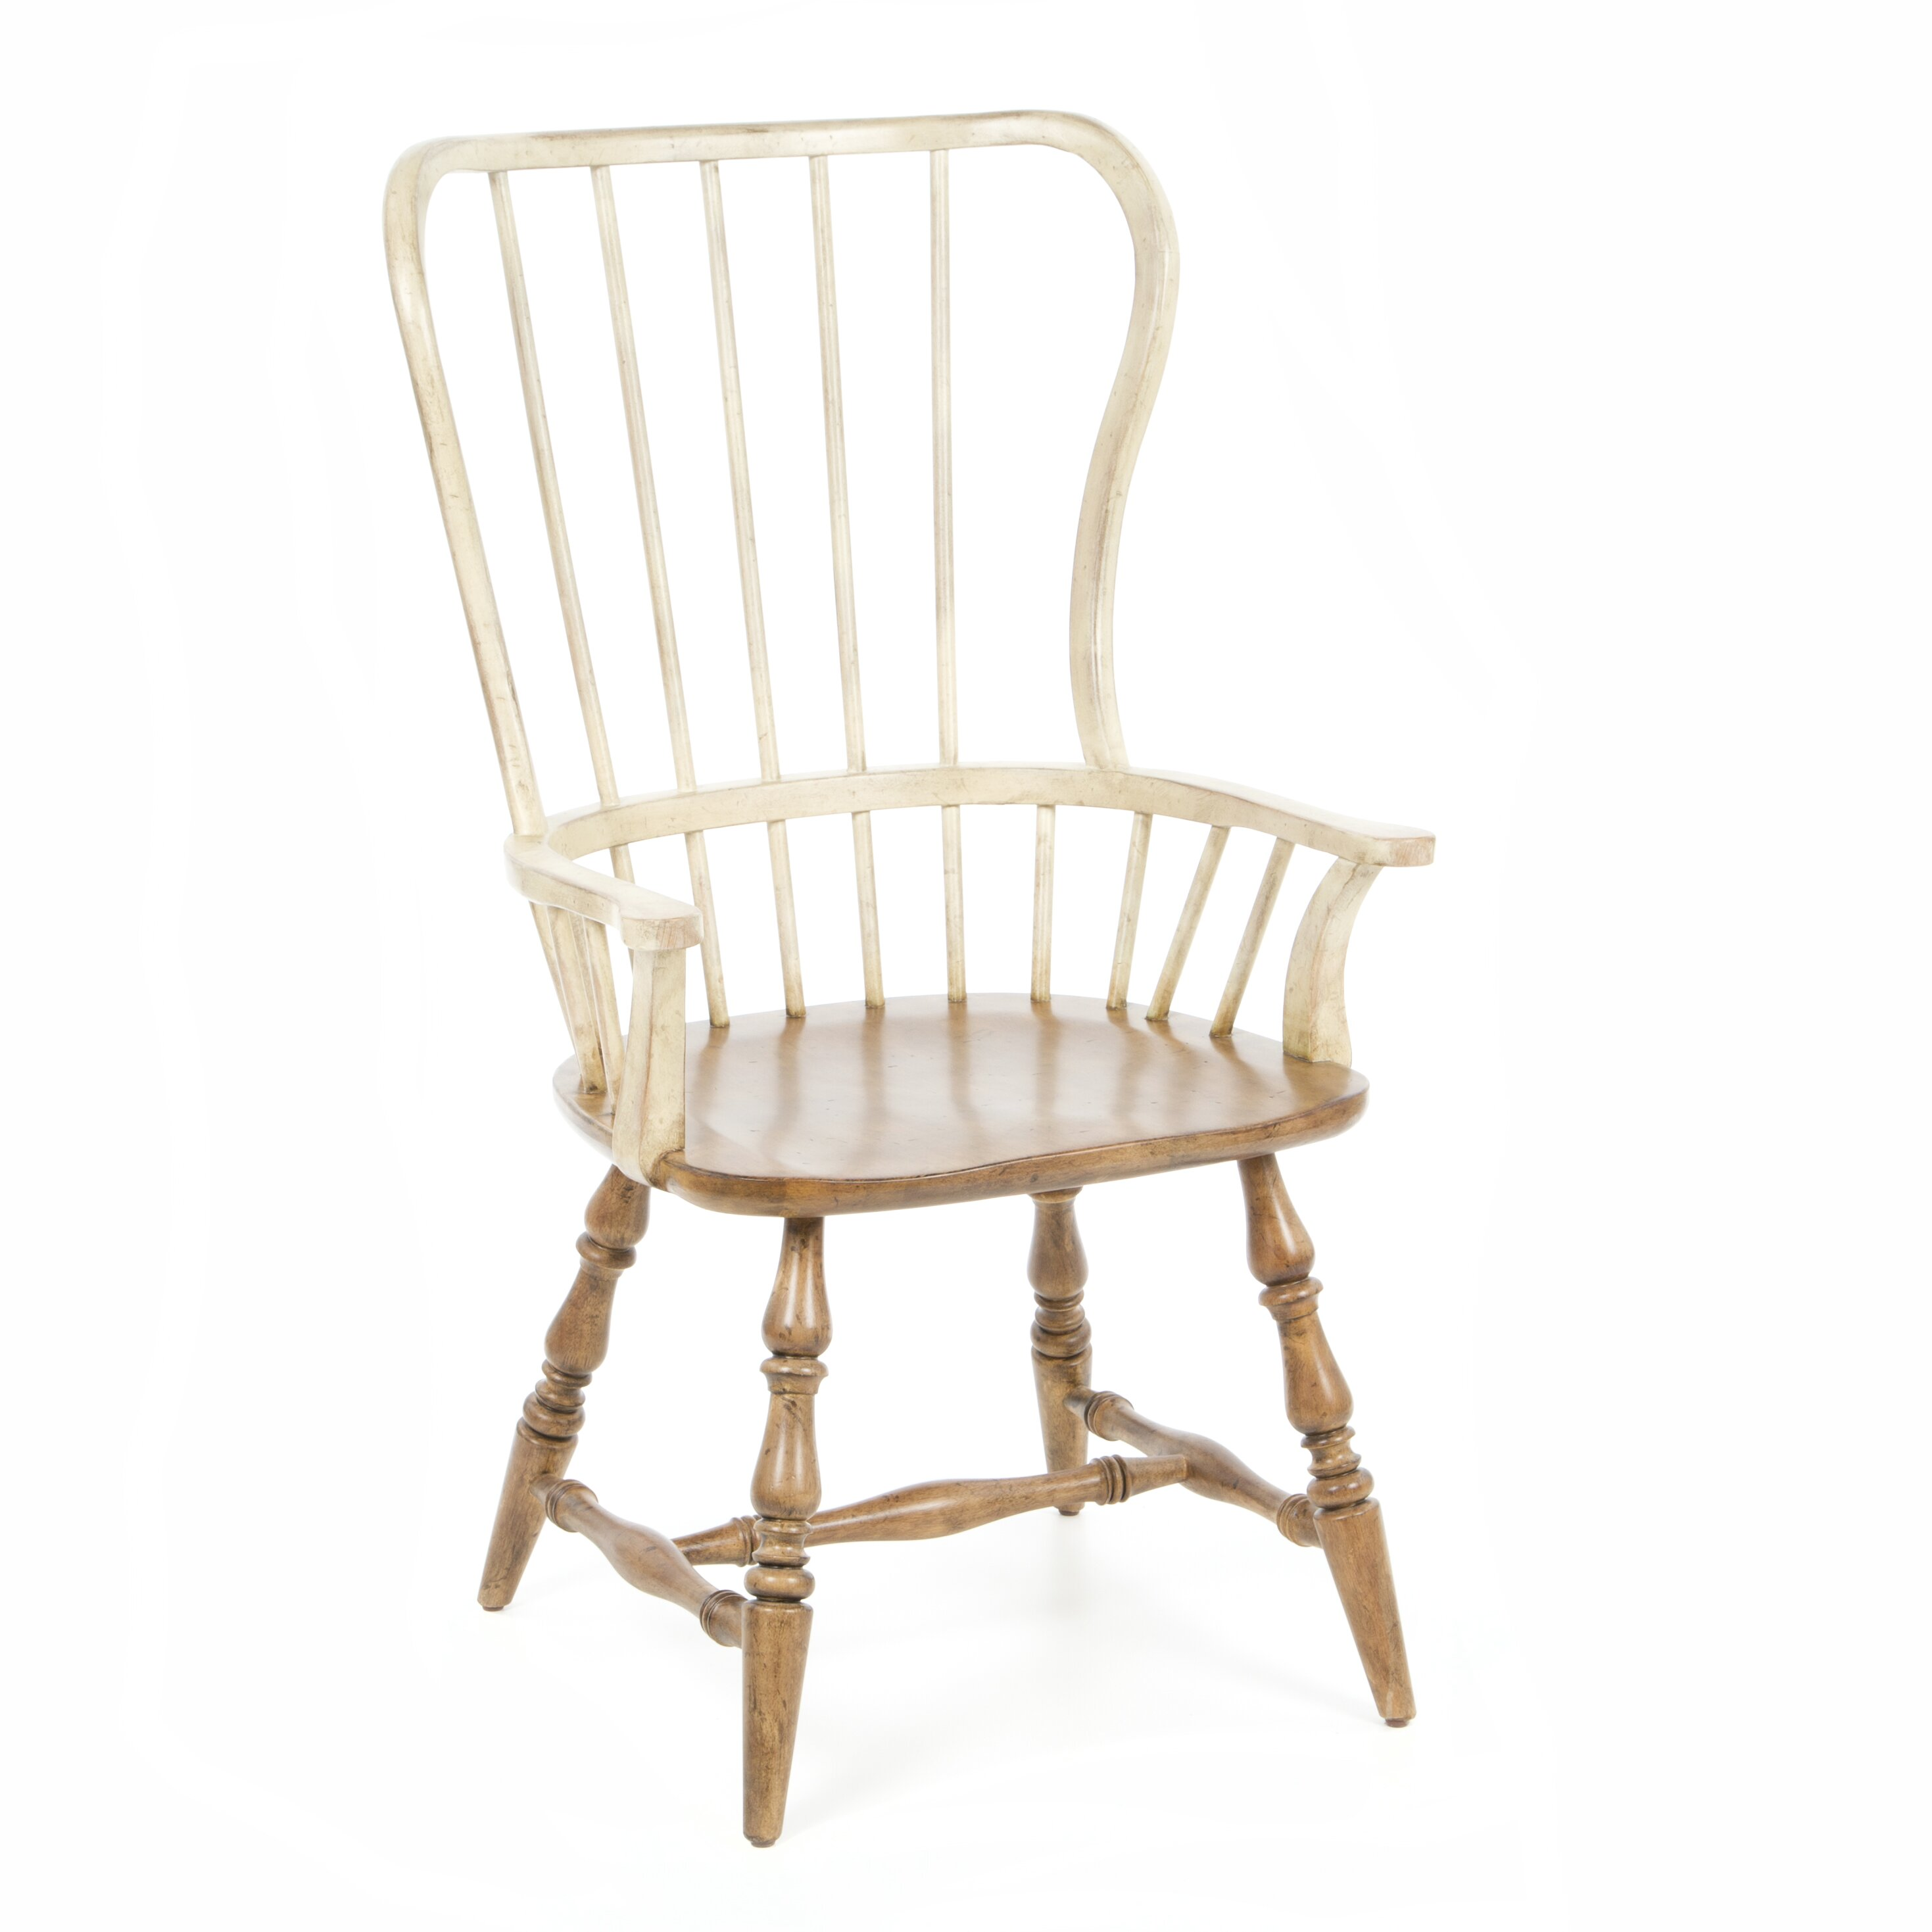 Hooker furniture sanctuary spindle back arm chair for Furniture 2 day shipping